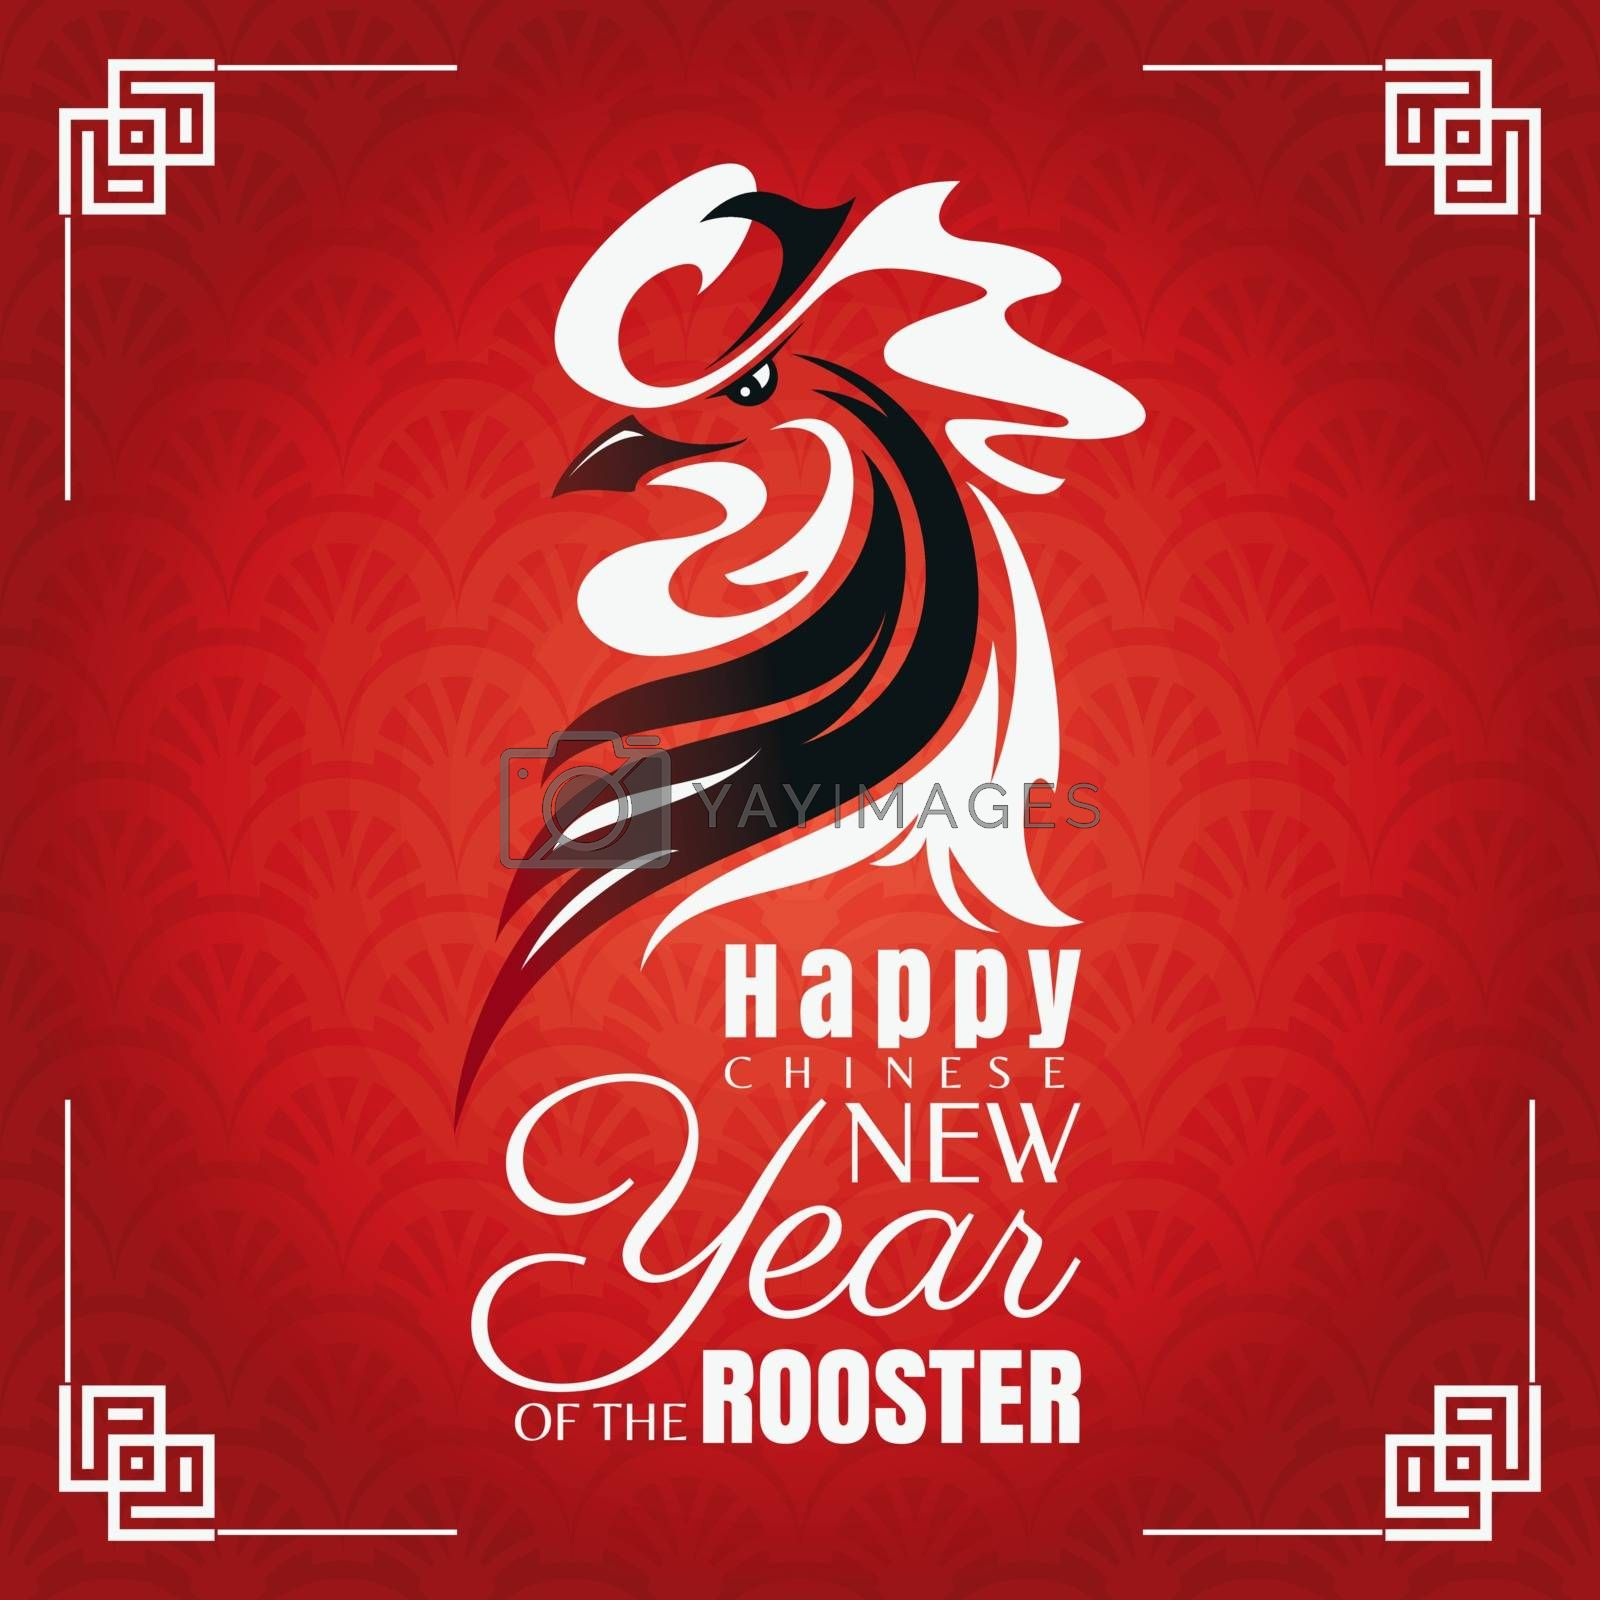 Chinese new year greeting card with rooster. Vector illustration